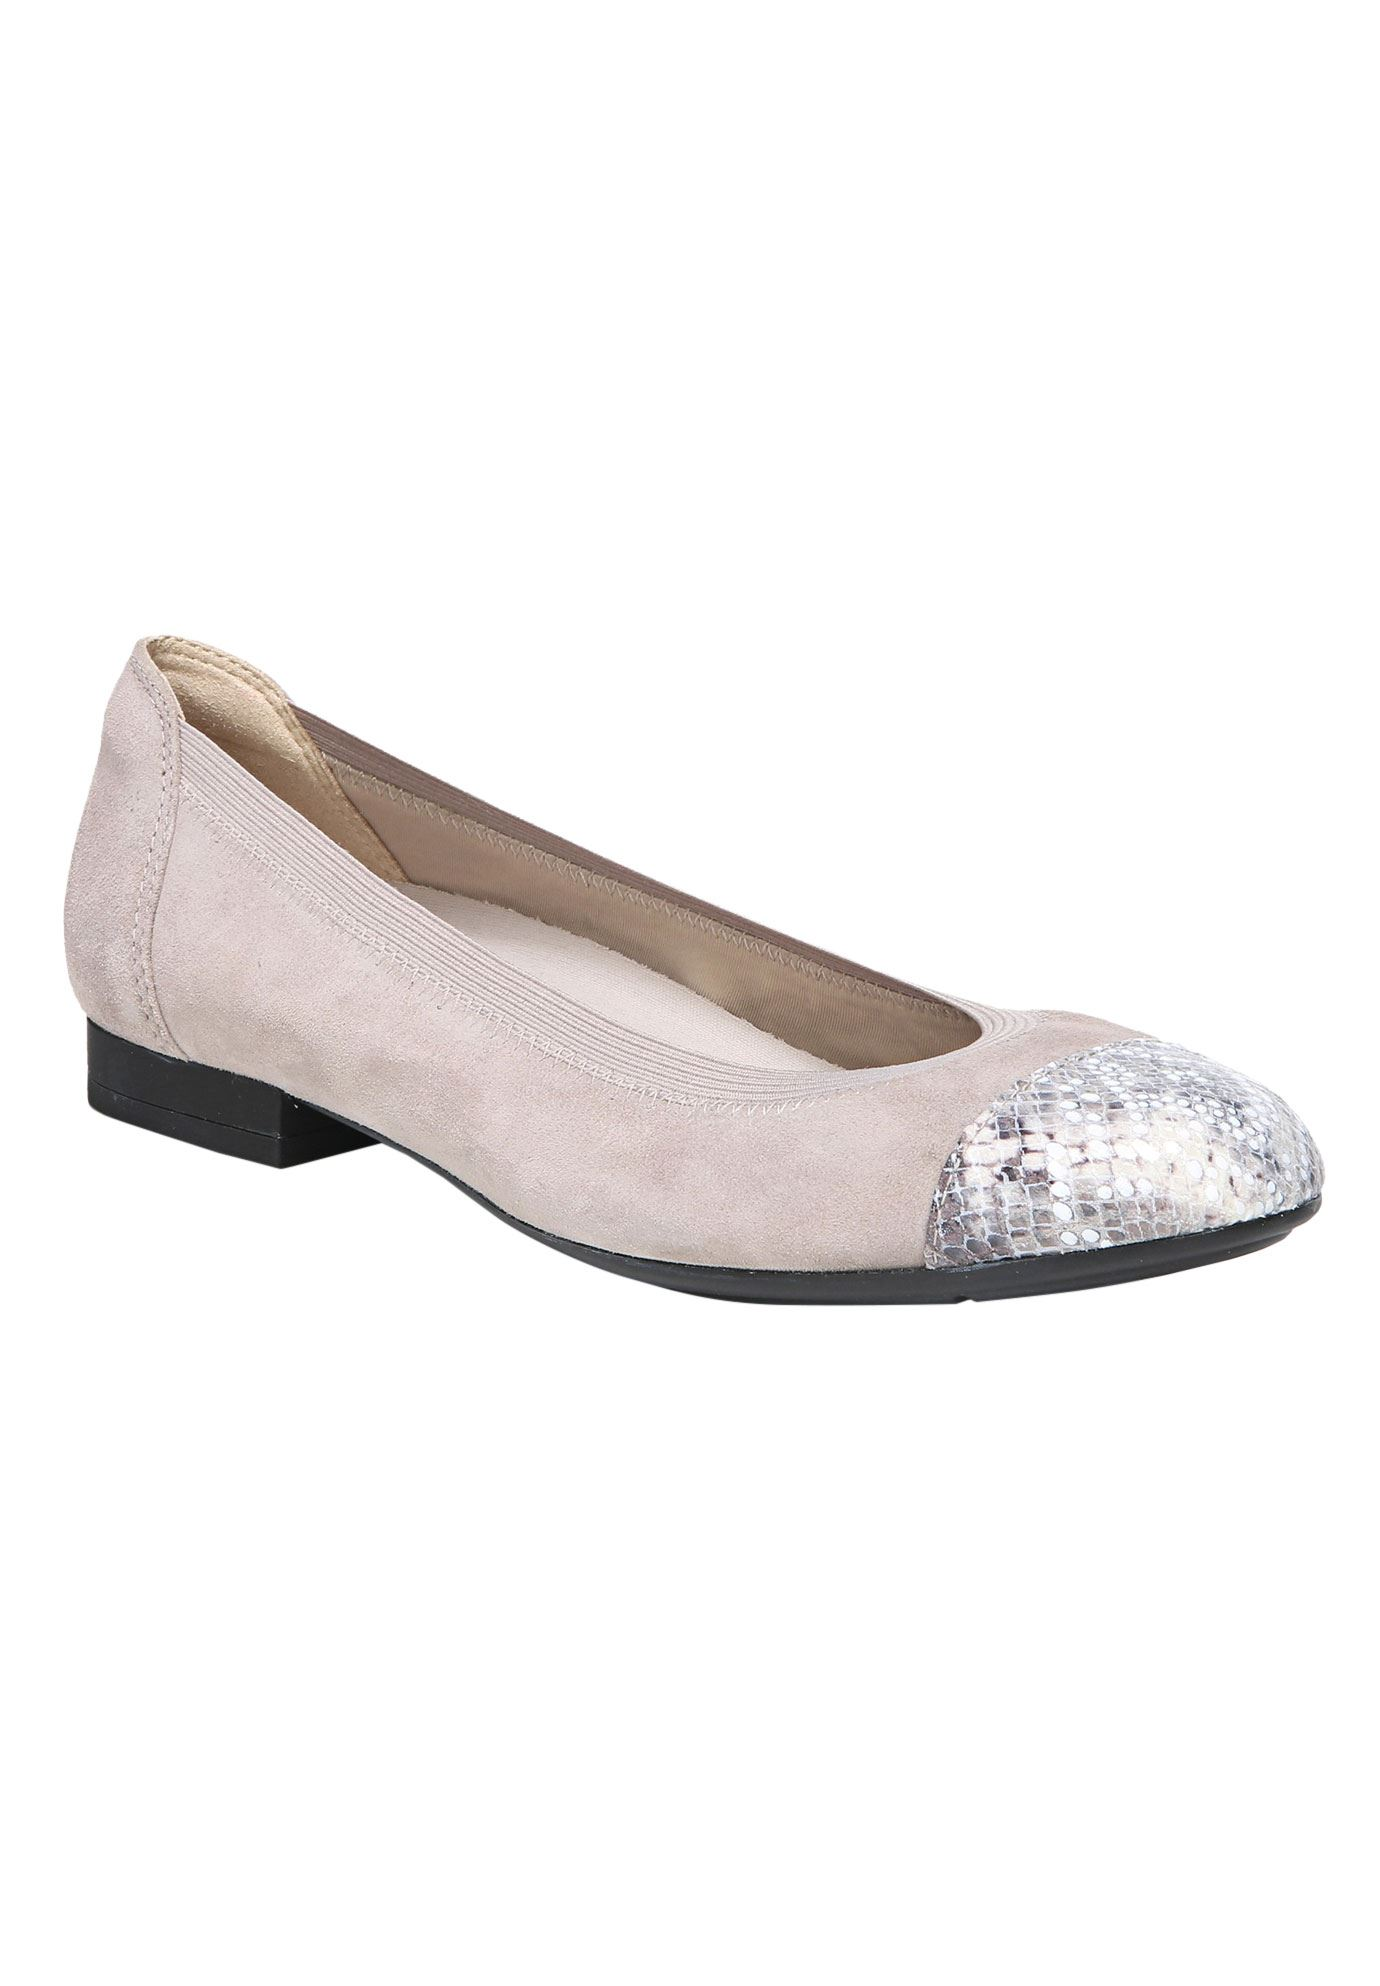 Therese Flats by Naturalizer®,